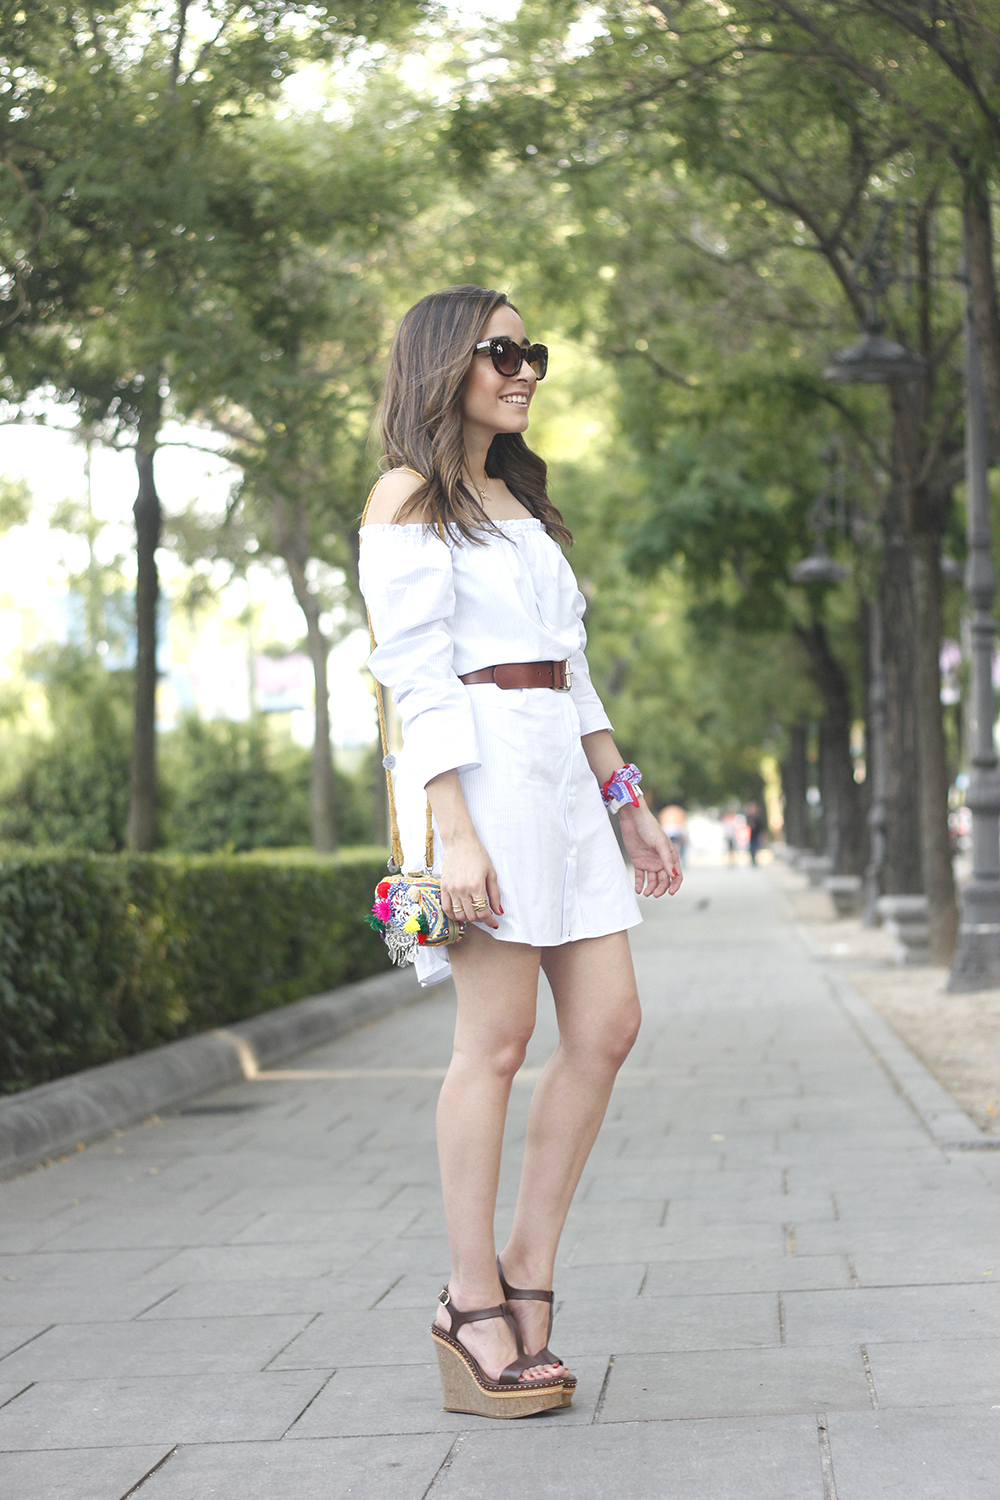 Off the shoulders striped dress belt summer outfit wedges sunnies style05